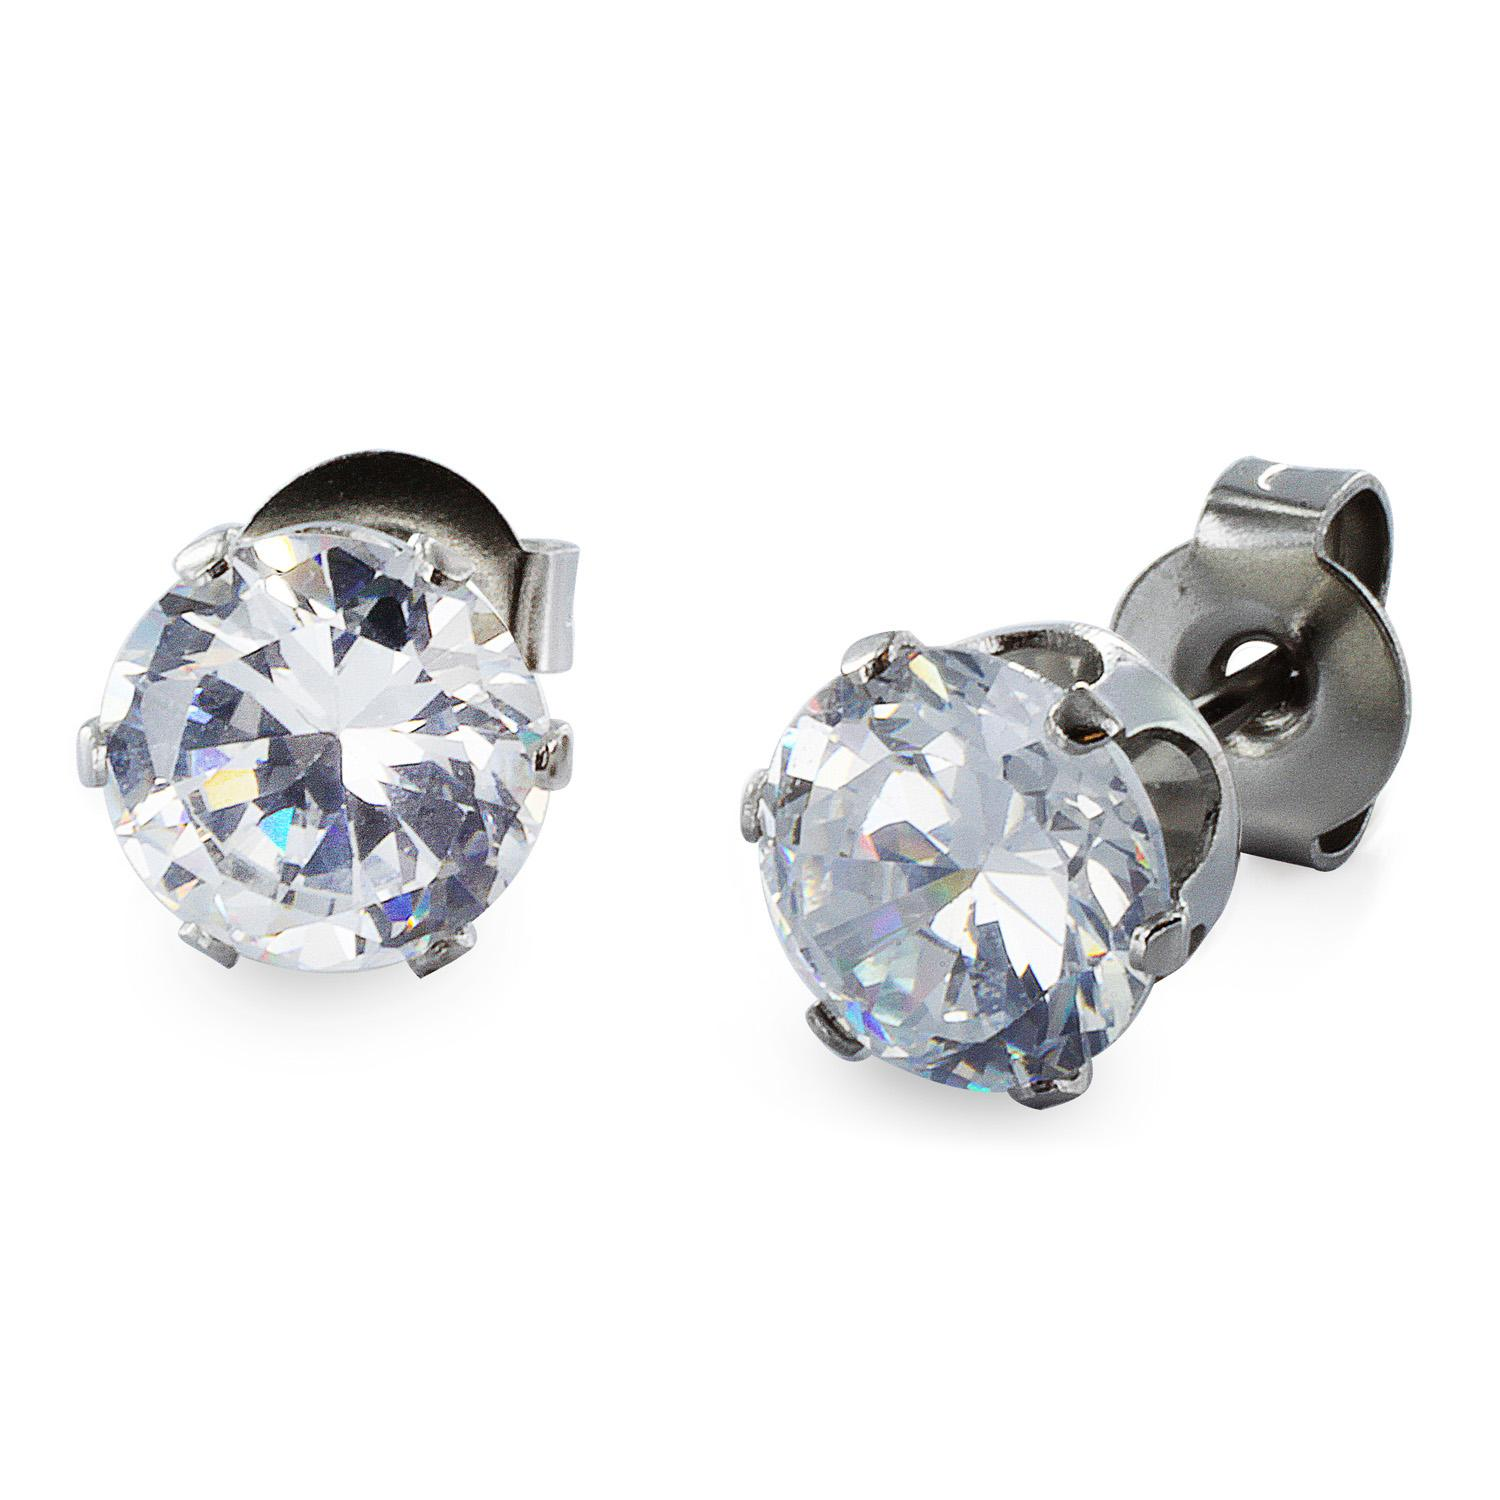 Stainless Steel Stud Earrings with Round Clear CZ - 5 mm